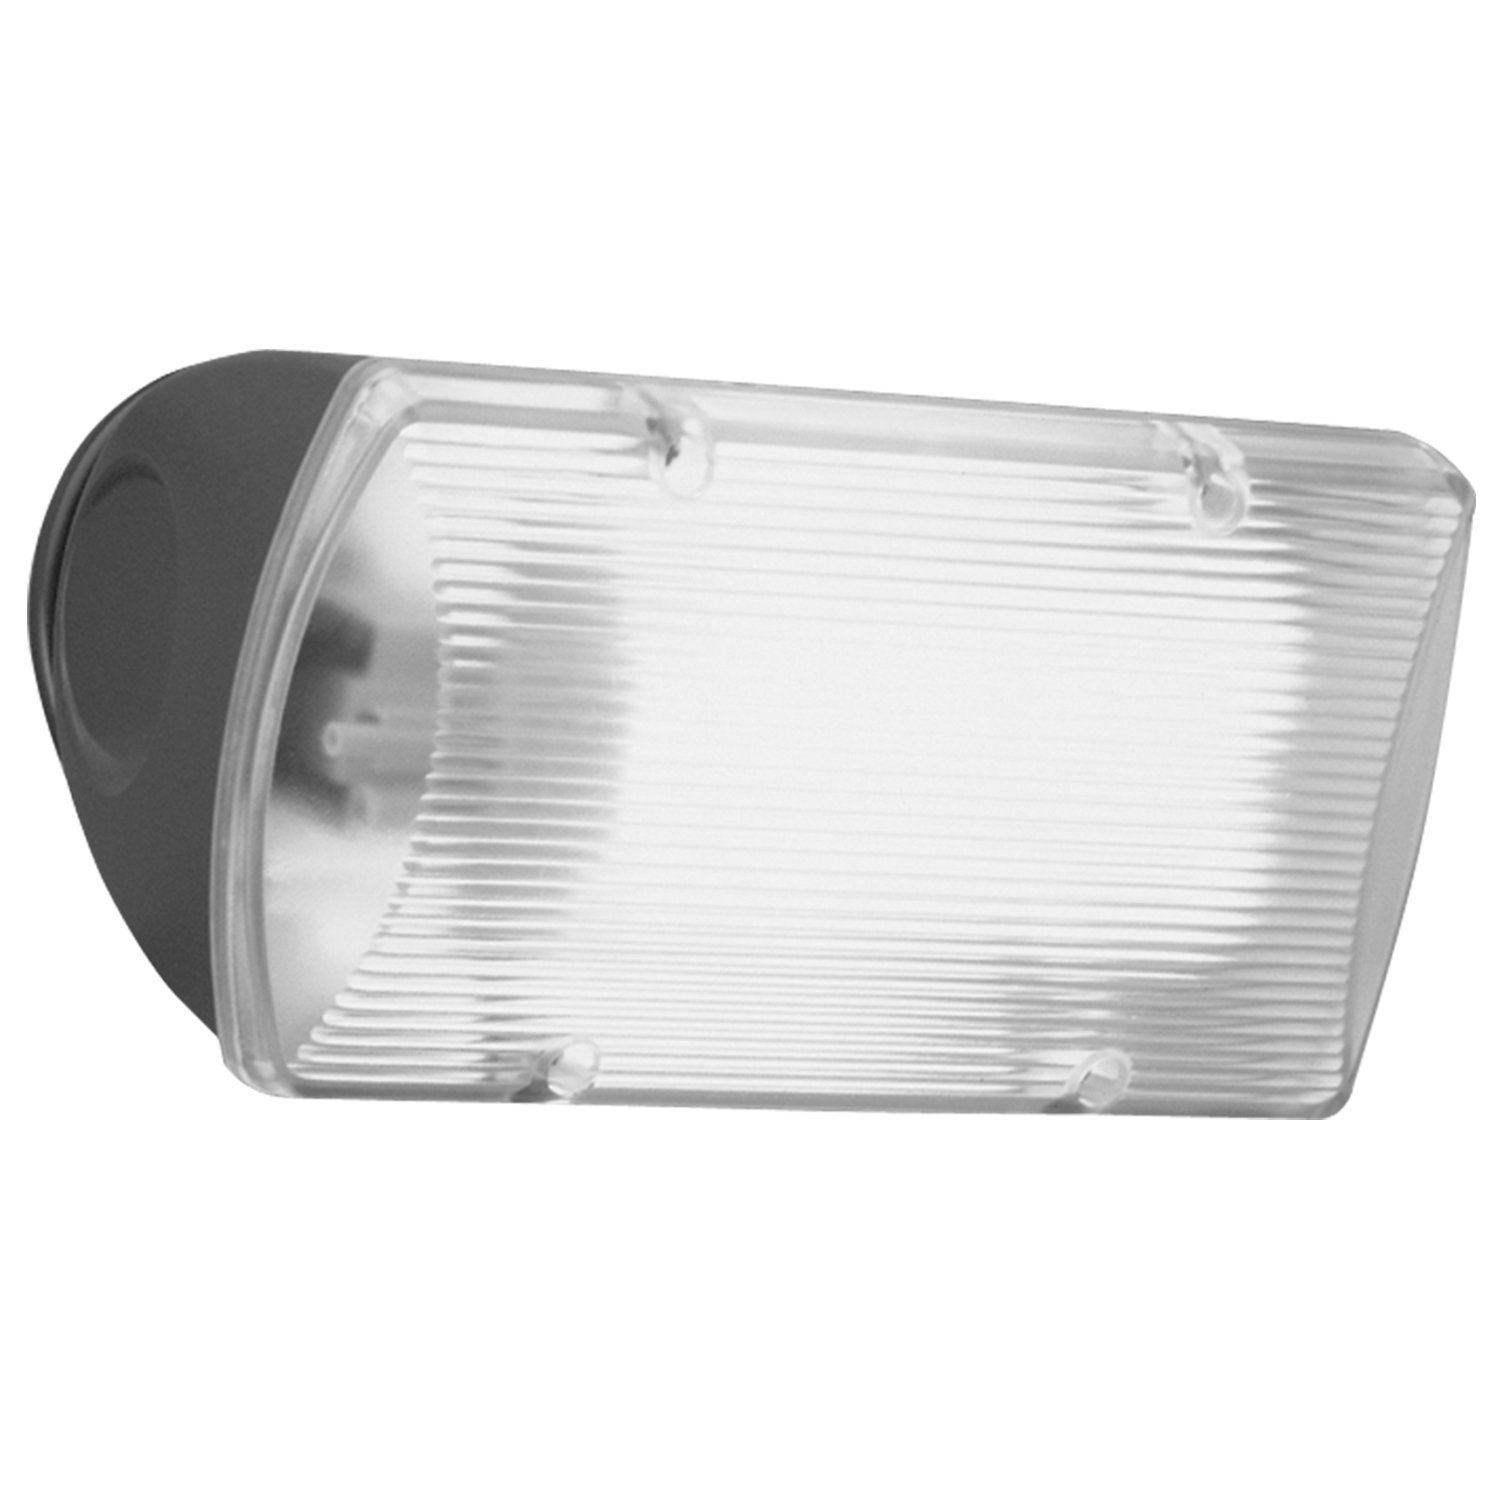 Ceiling Mounted Outdoor Flood Lights – Ceiling Designs With Outdoor Ceiling Flood Lights (#6 of 15)